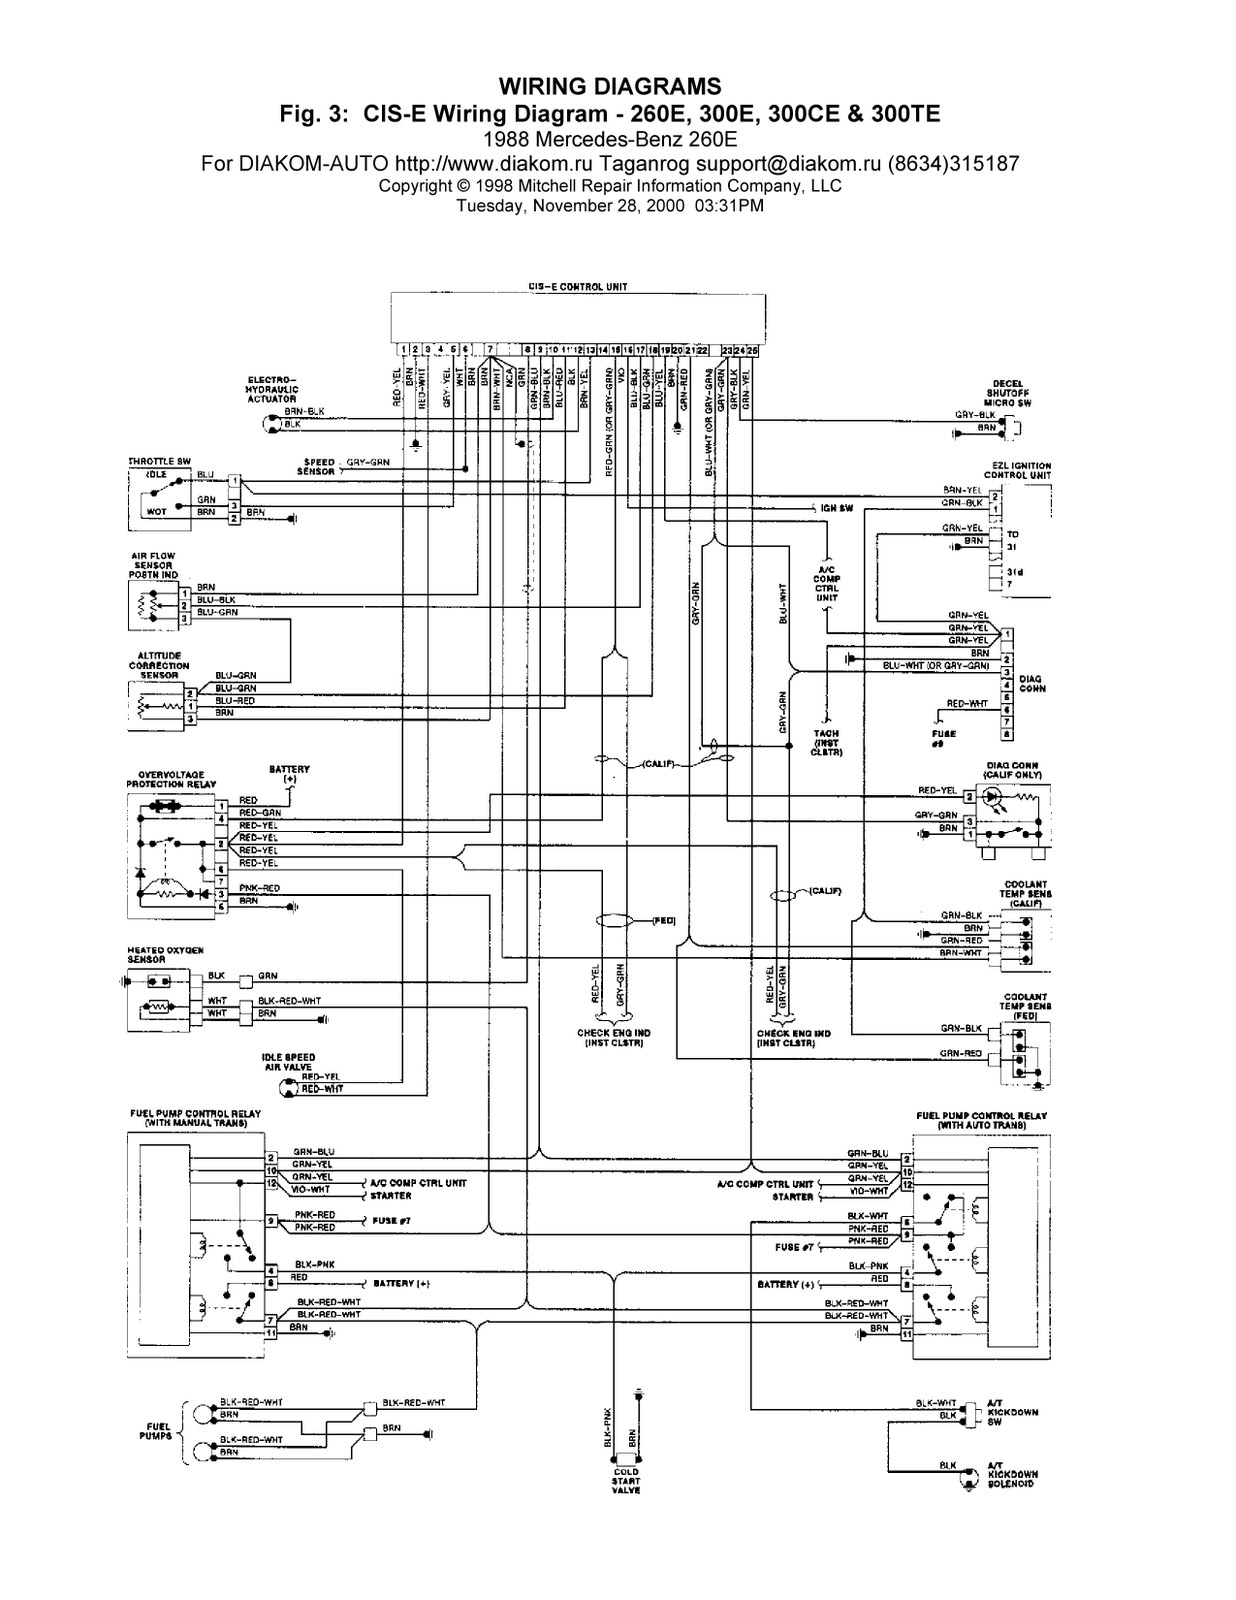 1988 mercedes benz 260e cis e wiring diagrams schematic wiring 1988 mercedes benz 260e cis e wiring diagrams